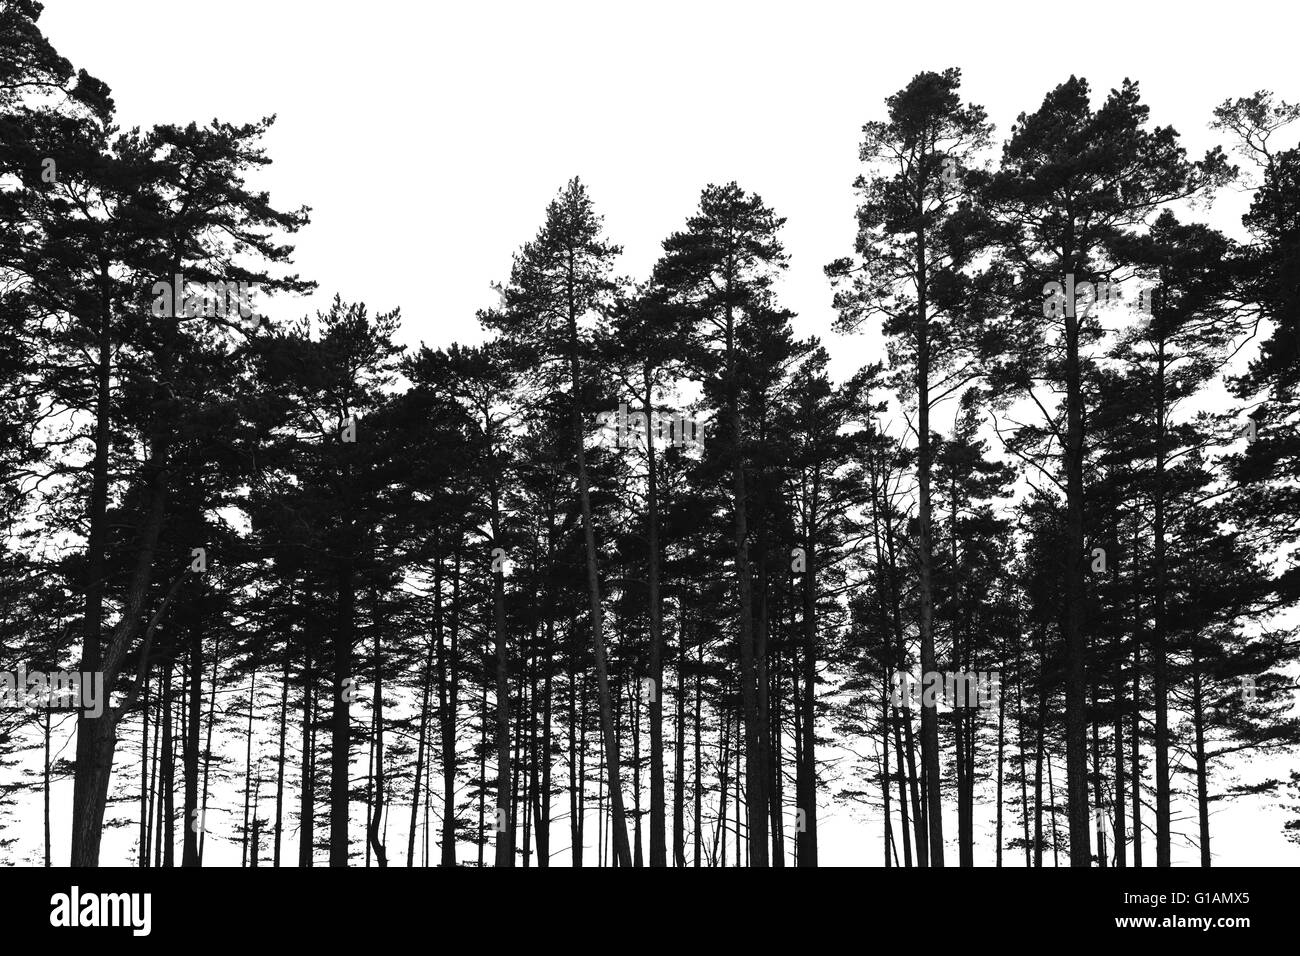 Pine trees forest isolated on white background. Black stylized silhouette photo - Stock Image